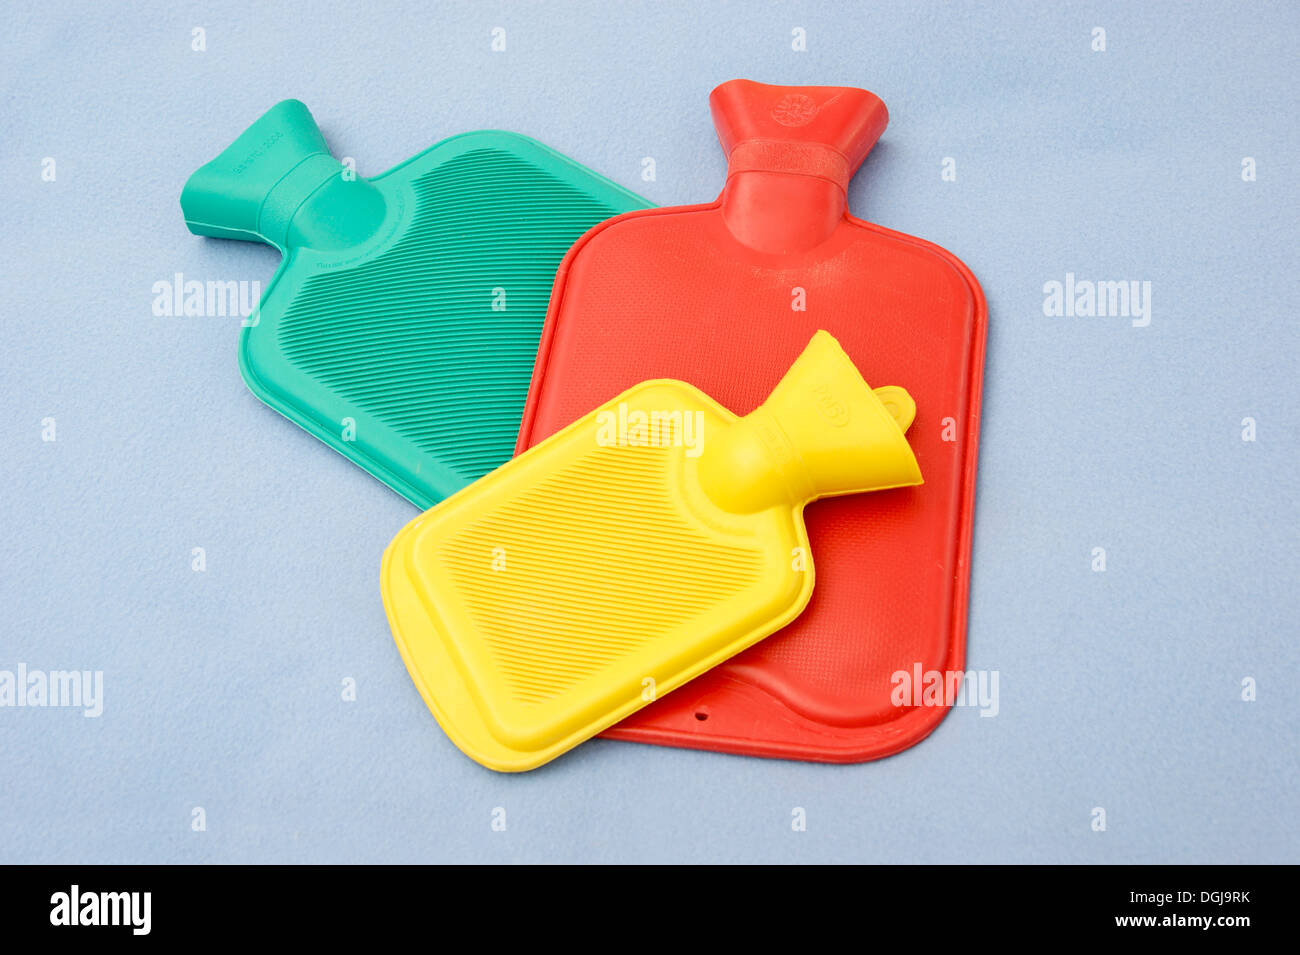 3 hot water bottles including a child's size one - Stock Image